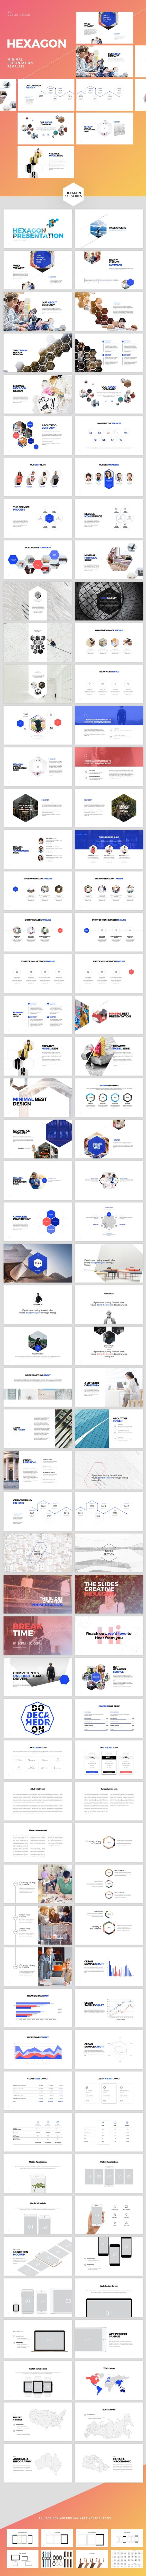 Hexagon Keynote Template — Keynote KEY #pitch • Download ➝ https://graphicriver.net/item/hexagon-keynote-template/19136024?ref=pxcr